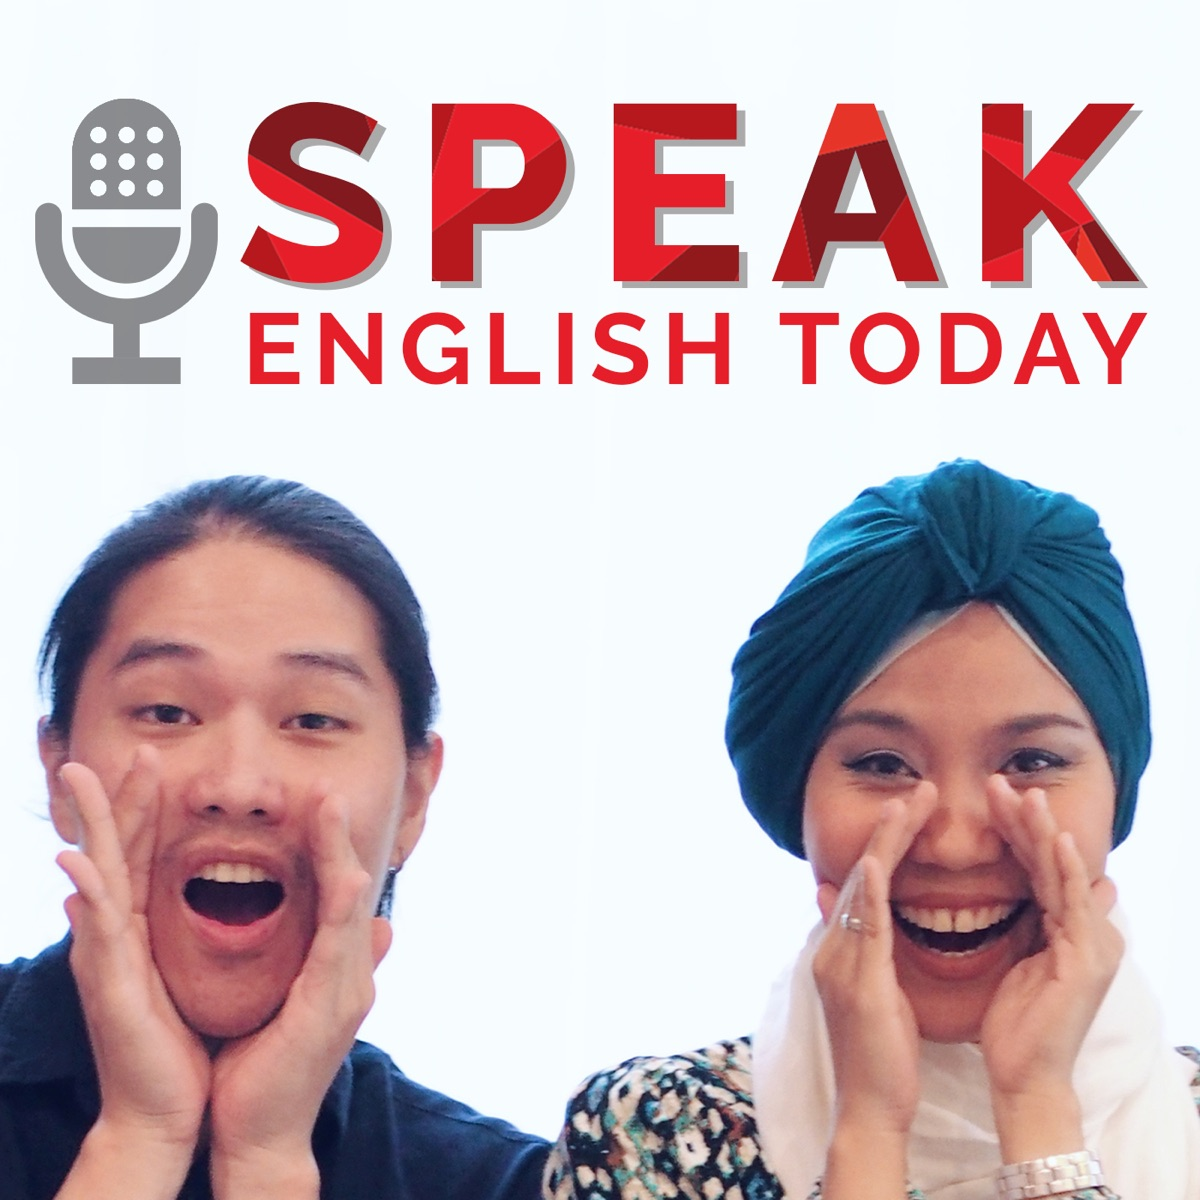 Speak English Today